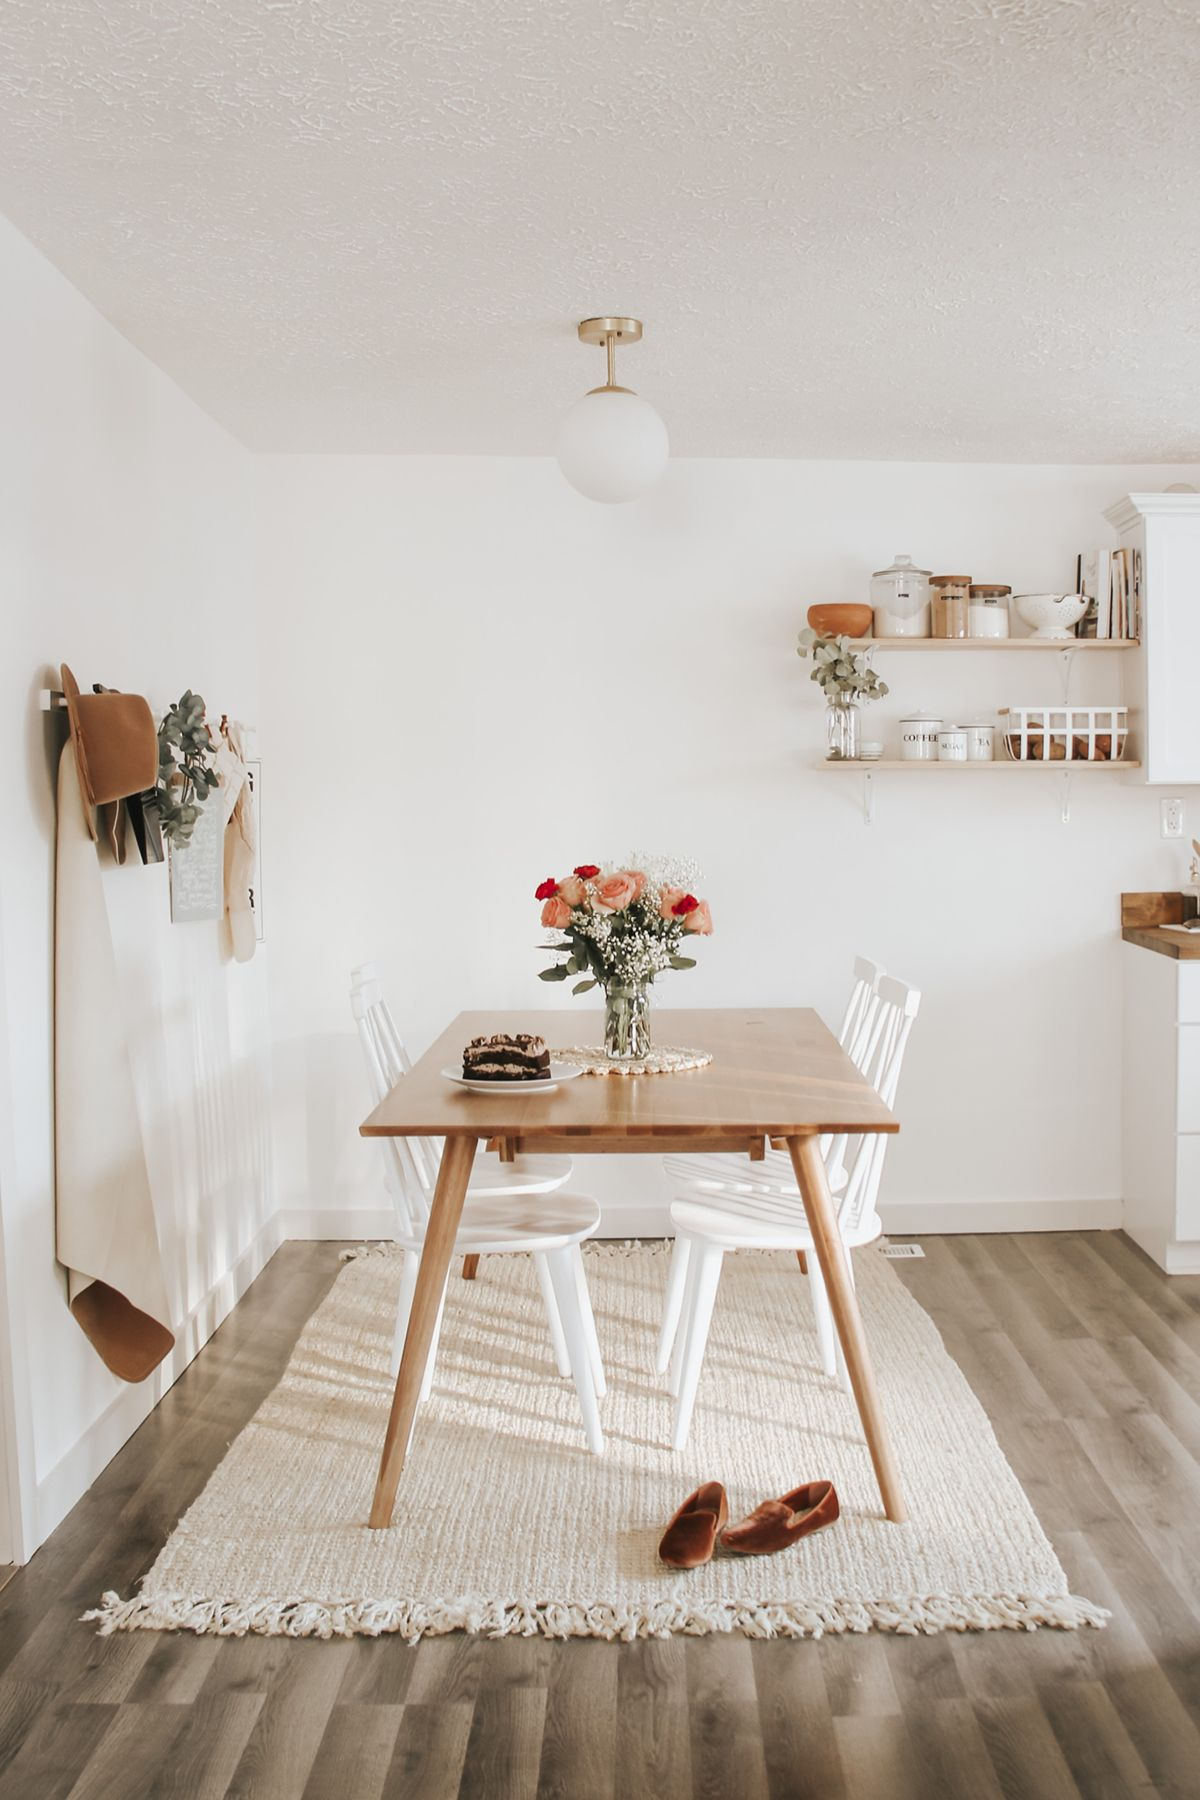 Dine Scandinavian style. Mix oaks with white for a light, bright, and cozy dining experience. Photo by Kenzie Salomon. #DiningRoomInspo #WoodTable #DiningRoomTable #InteriorIdeas